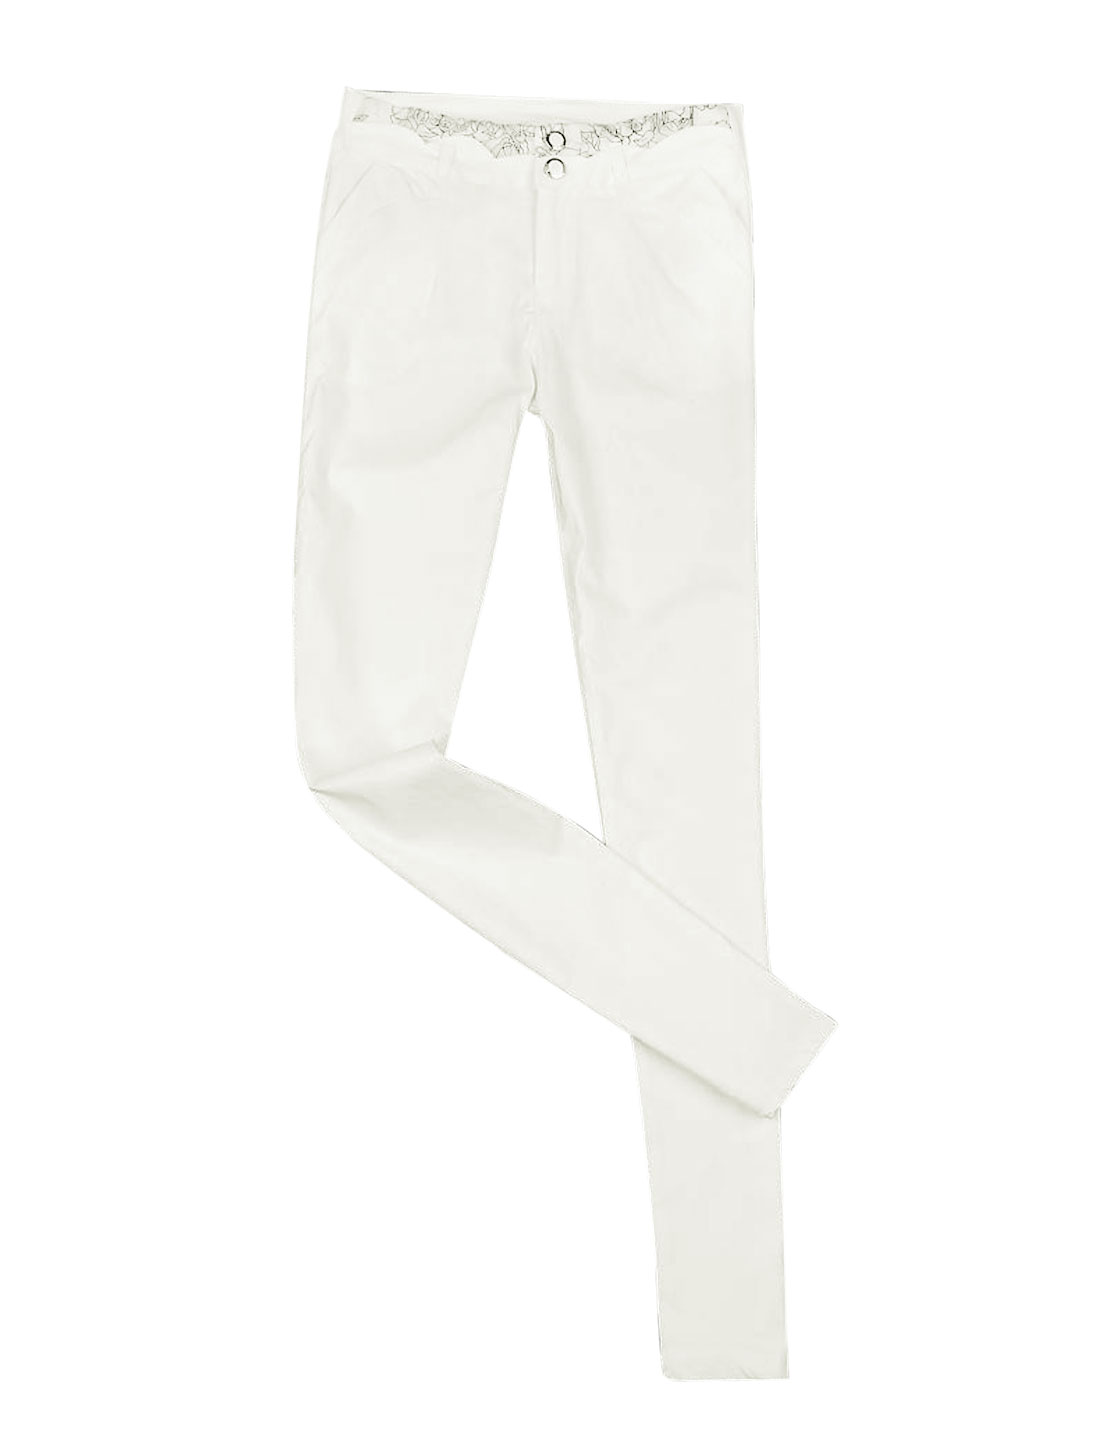 Women Belt Loop Zip Fly Tapered Slim Pencil Trousers White XS